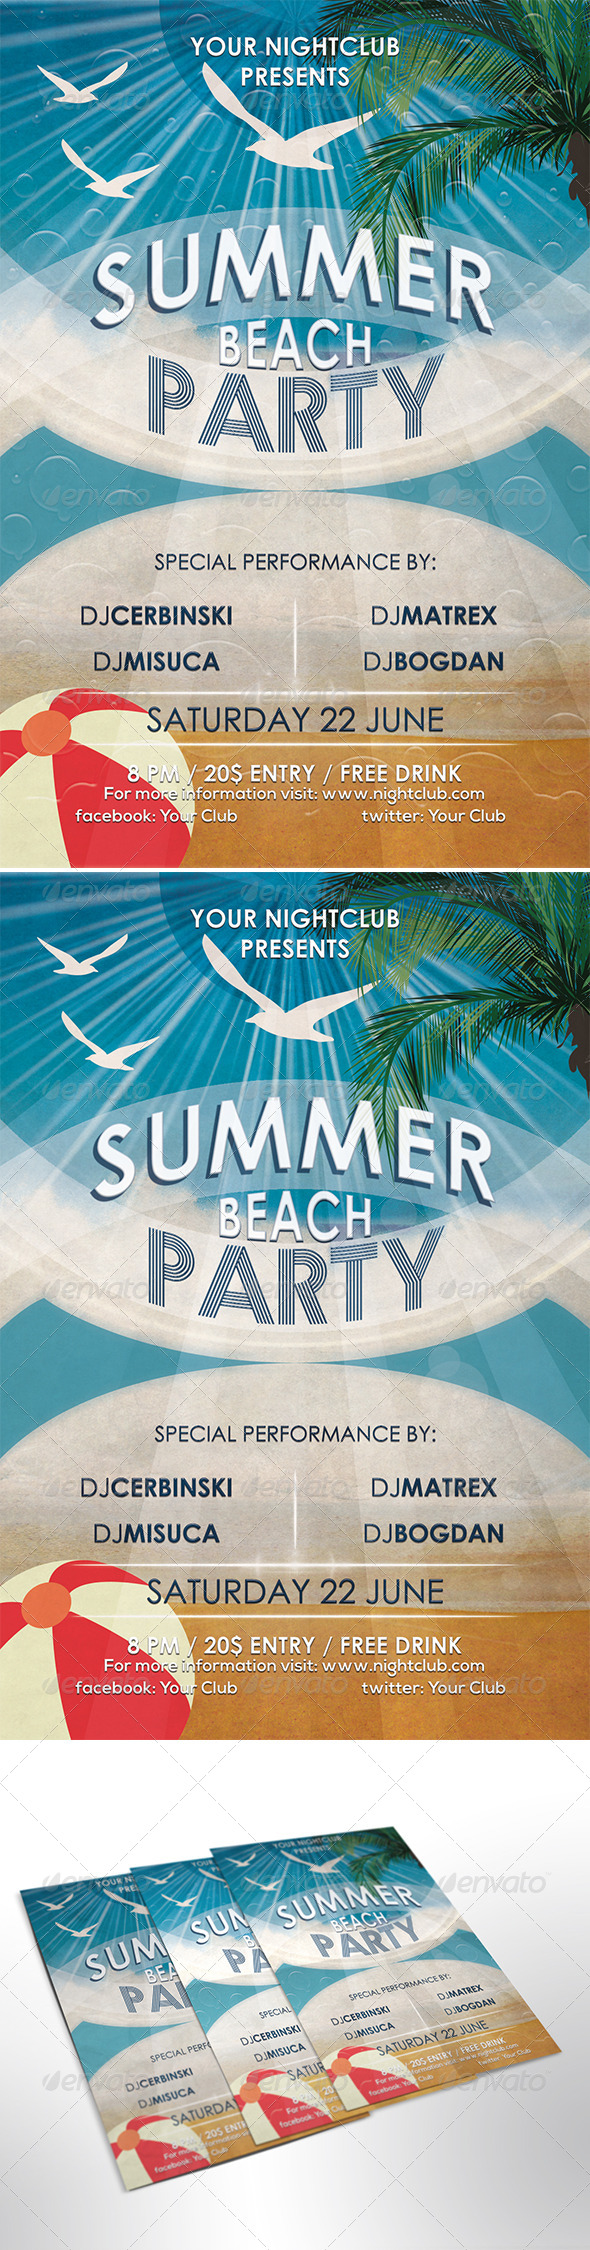 GraphicRiver Summer Beach Party 7930625